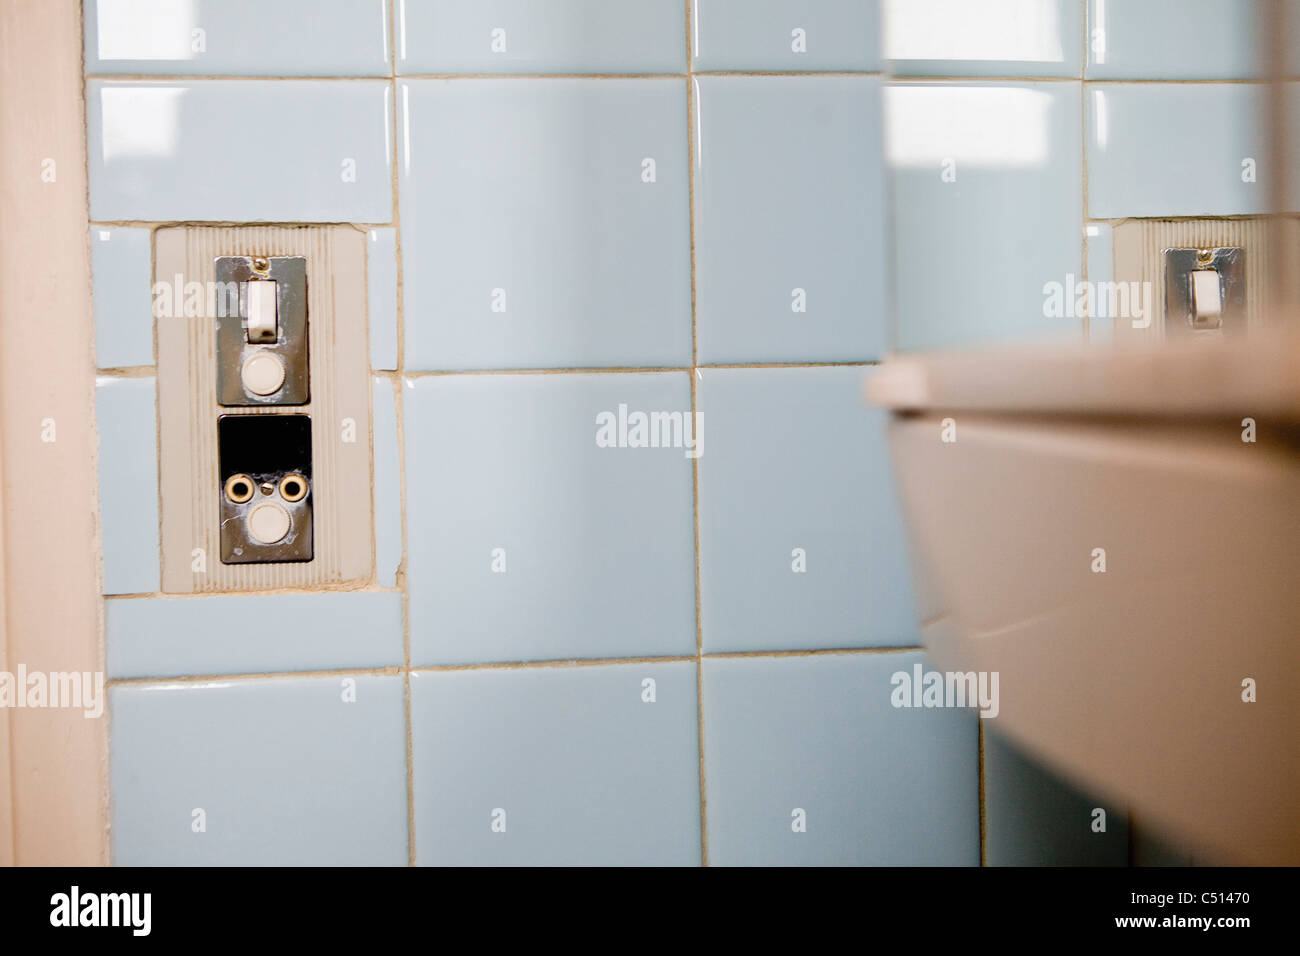 Ight switch and electrical outlet on tiled wall Stock Photo ...